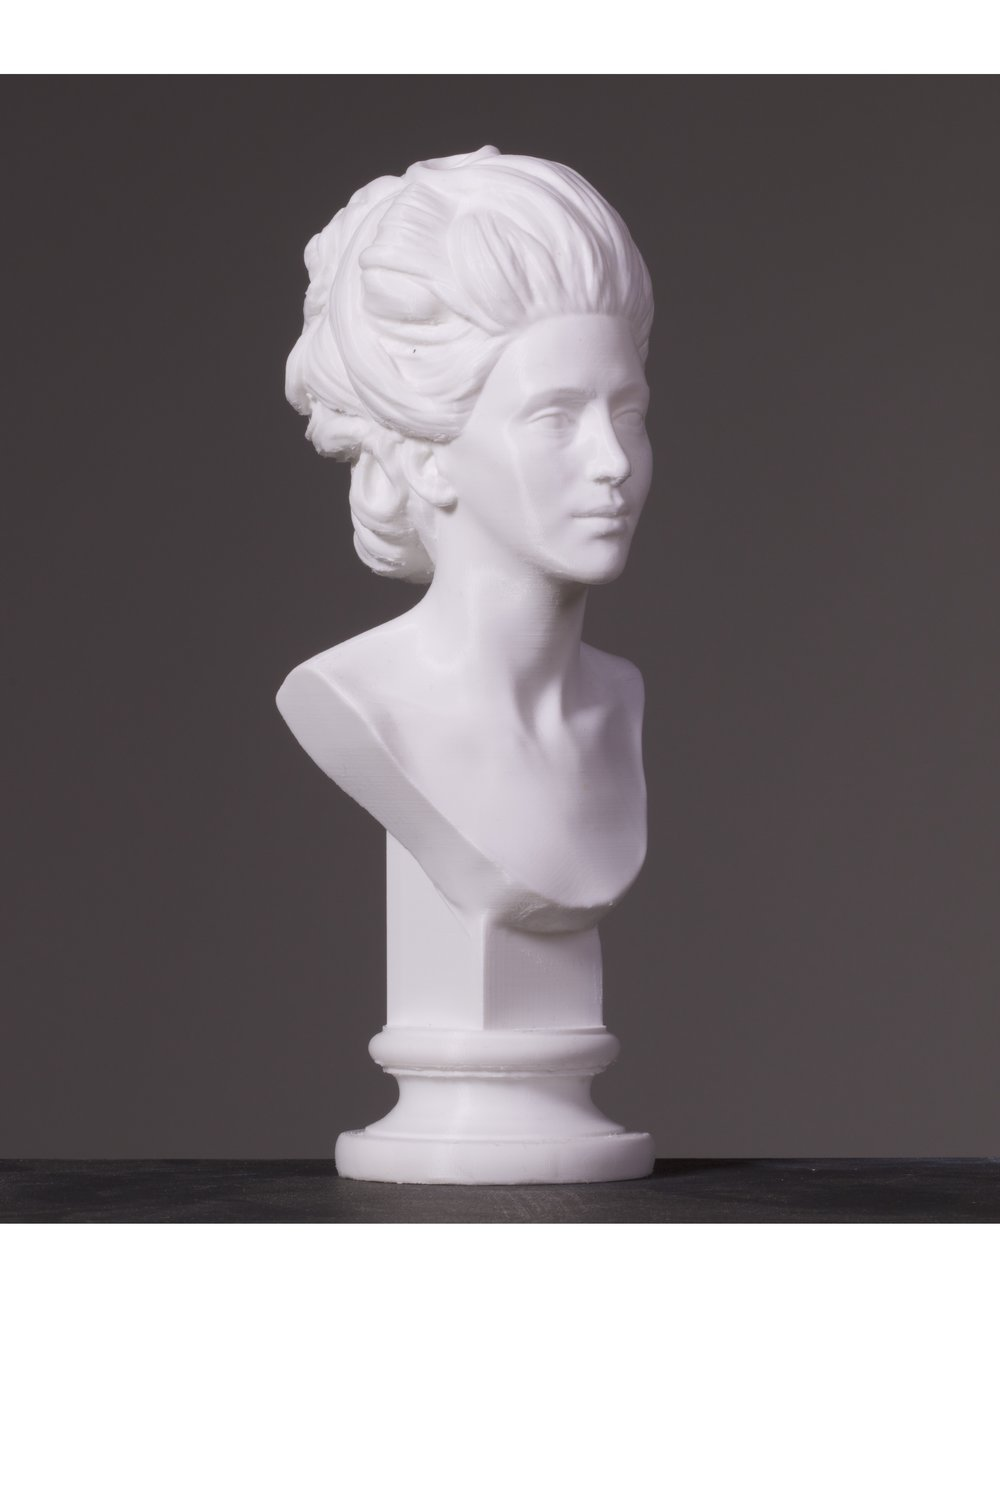 A Bust for Margaret Desenfans: The Forgotten Female Founder of the Dulwich Picture Galley, 2018  (collaboration with Joseph Steele)  Margaret Desenfans (1737-1814) or (1731-1814) was one of three founders of Dulwich Picture Gallery. In 1757, aged 20. In 1776, she married the art collector and dealer Noel Desenfans.[6] She, her French husband, and their friend Francis Bourgeois would eventually build up an art collection which became the basis of Dulwich Picture Gallery in London.  Despite playing a pivotal role in the creation of the gallery and collection, there is no bust of Margaret in the mausoleum where she is interred alongside her husband Noel Desenfans and Sir Peter Francis Bourgeois. Joseph Steele and I decided to start a project to create a marble bust of Margaret based on the only painting of her ever made, working with the Friends of the Dulwich Picture Gallery and gallery staff.